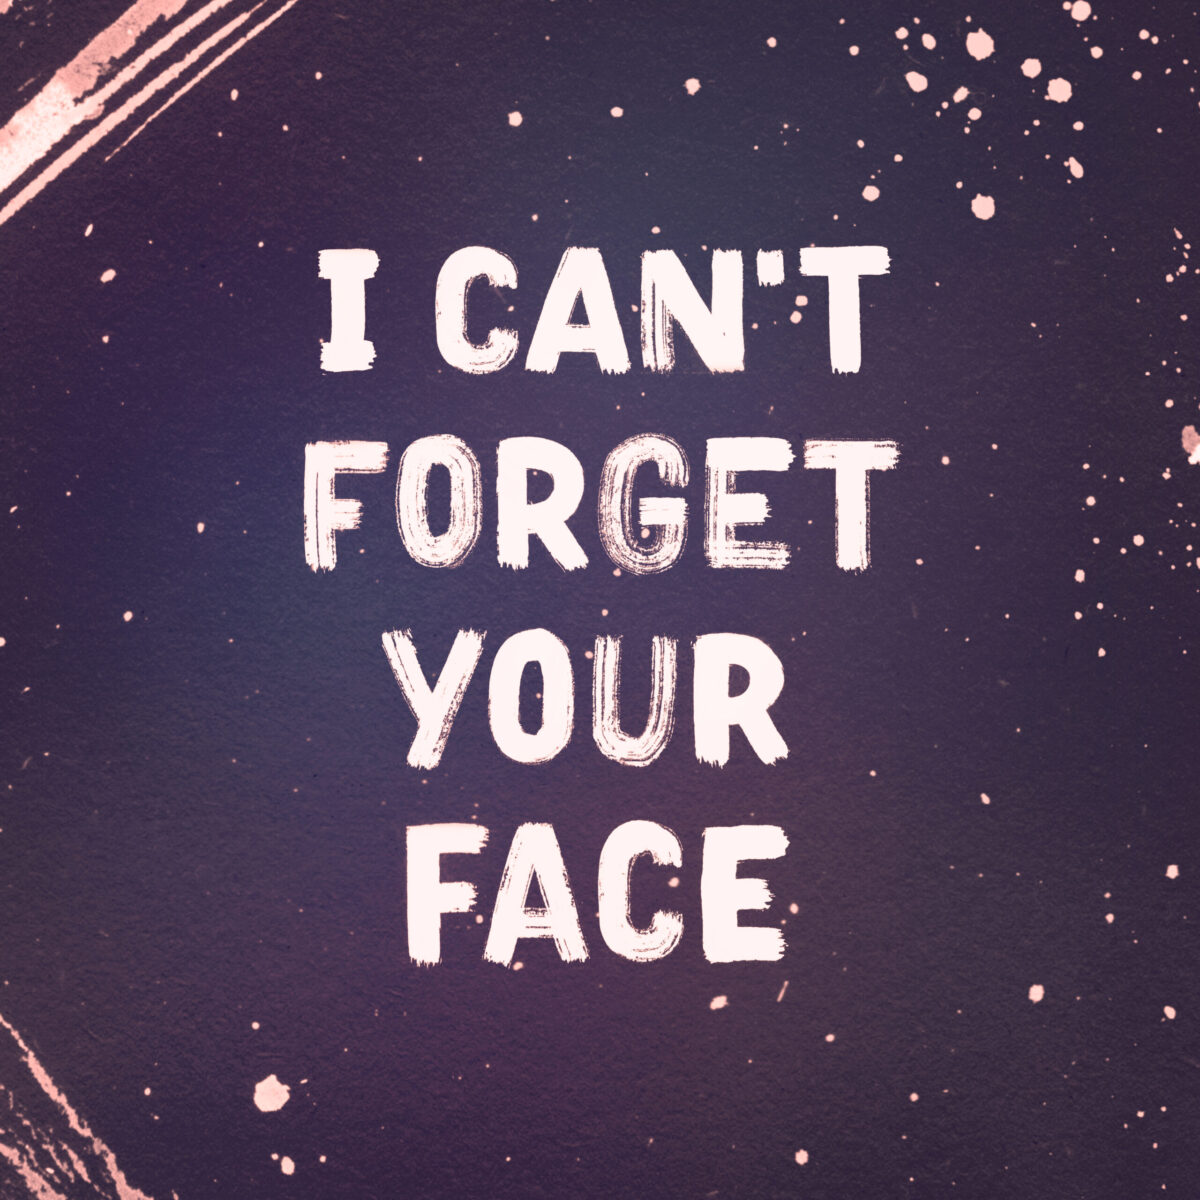 Ramona Schratt - I Cant Forget Your Face Lettering